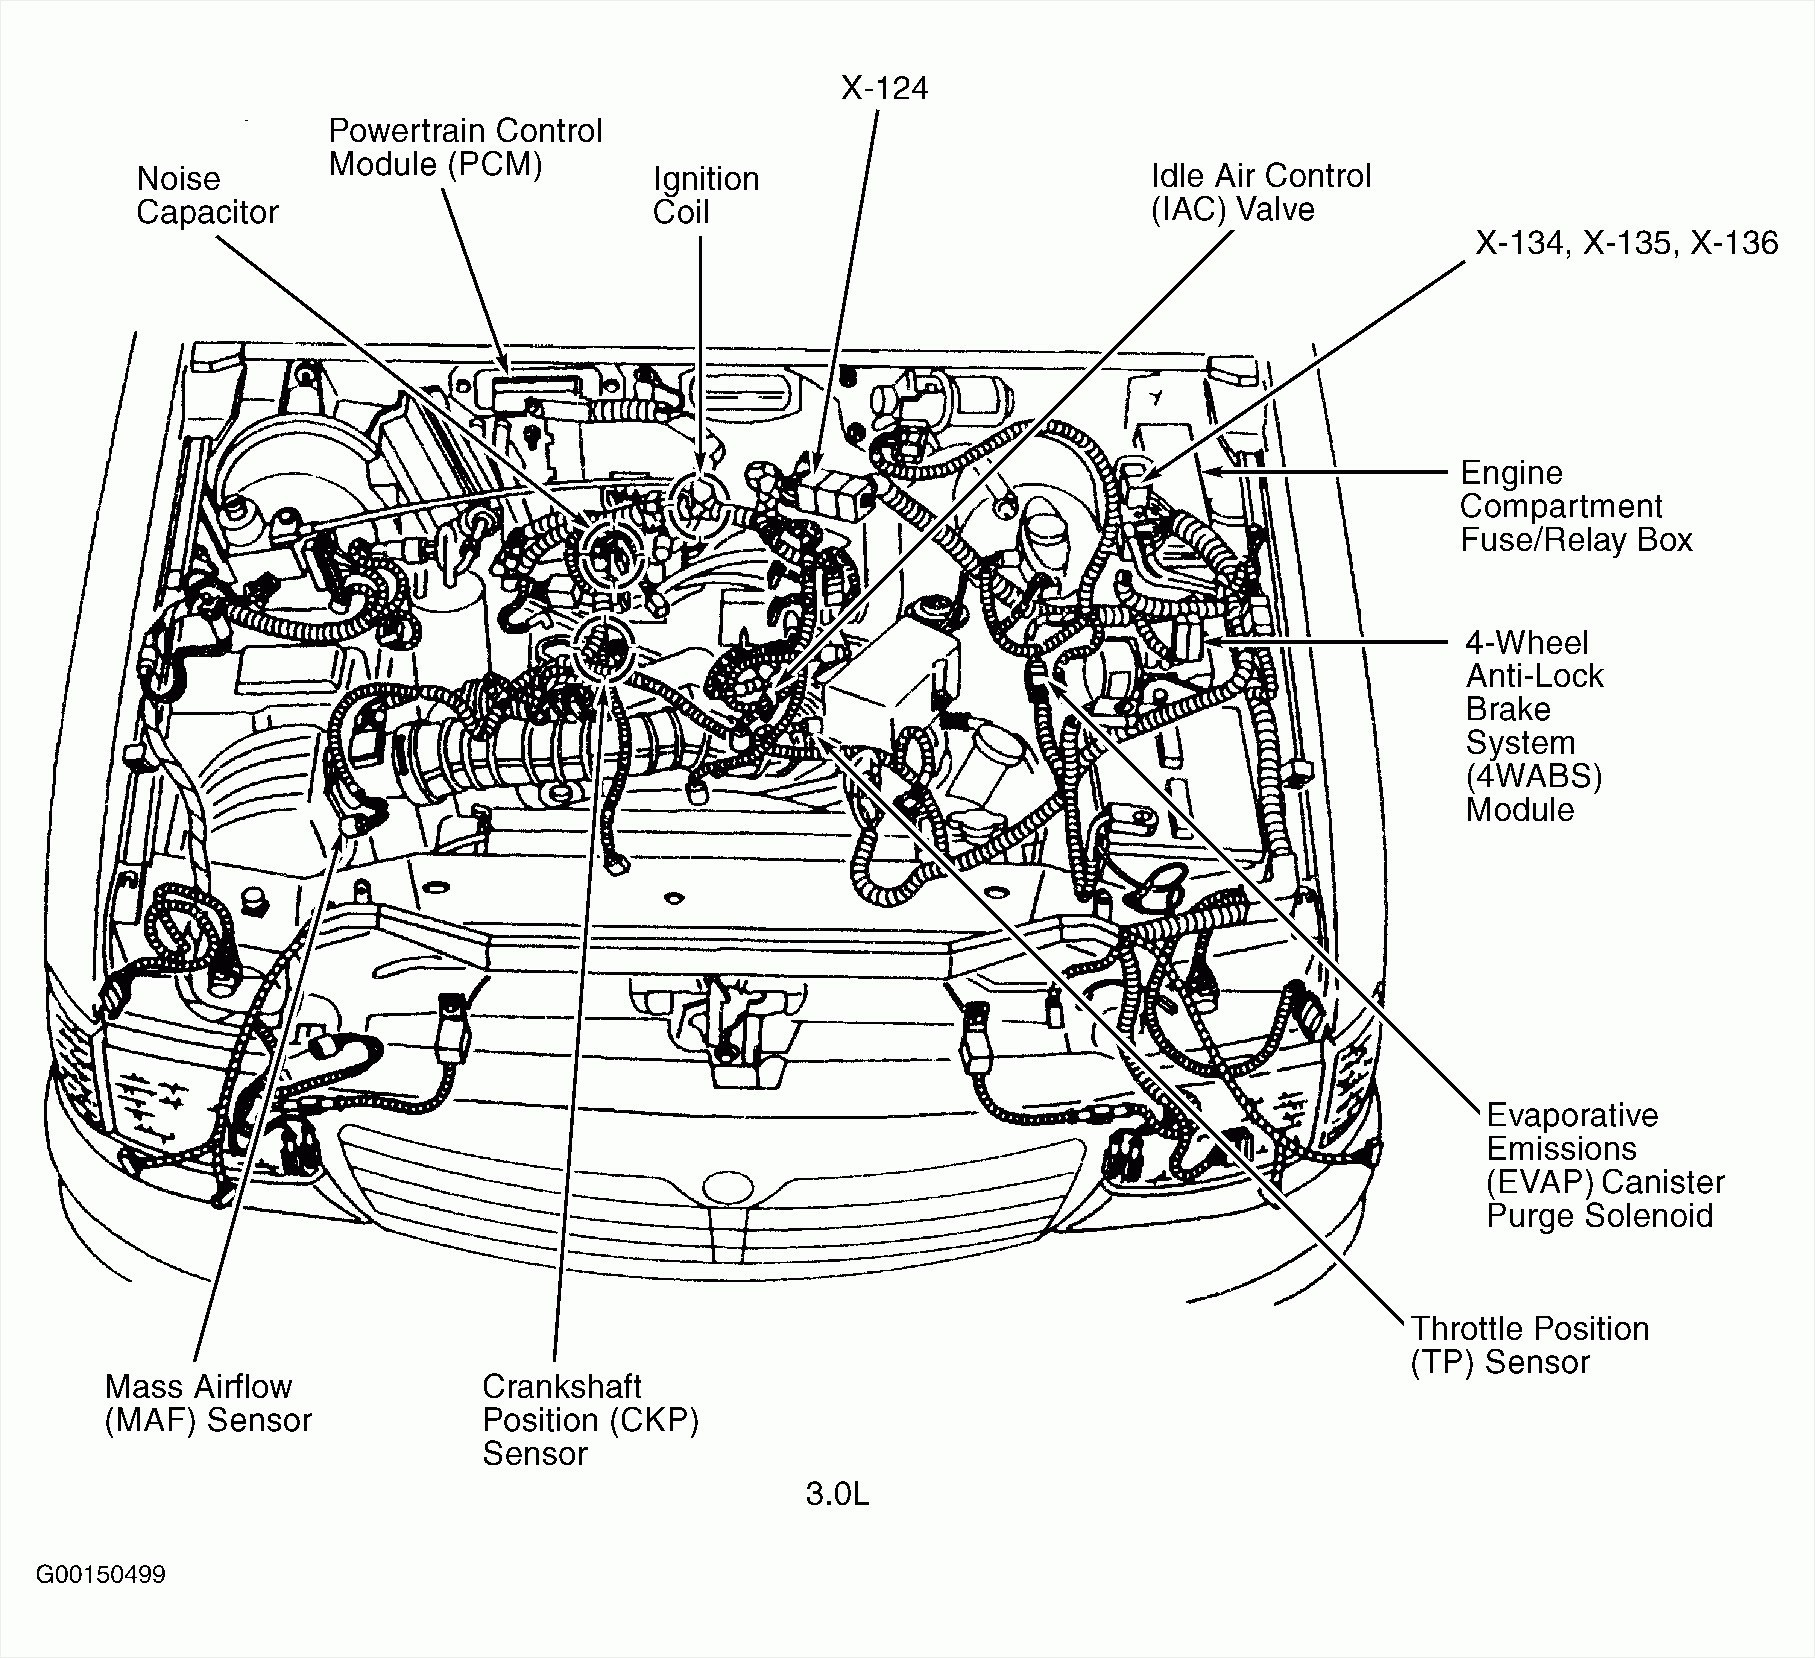 2006 buick lacrosse fuse diagram with labels